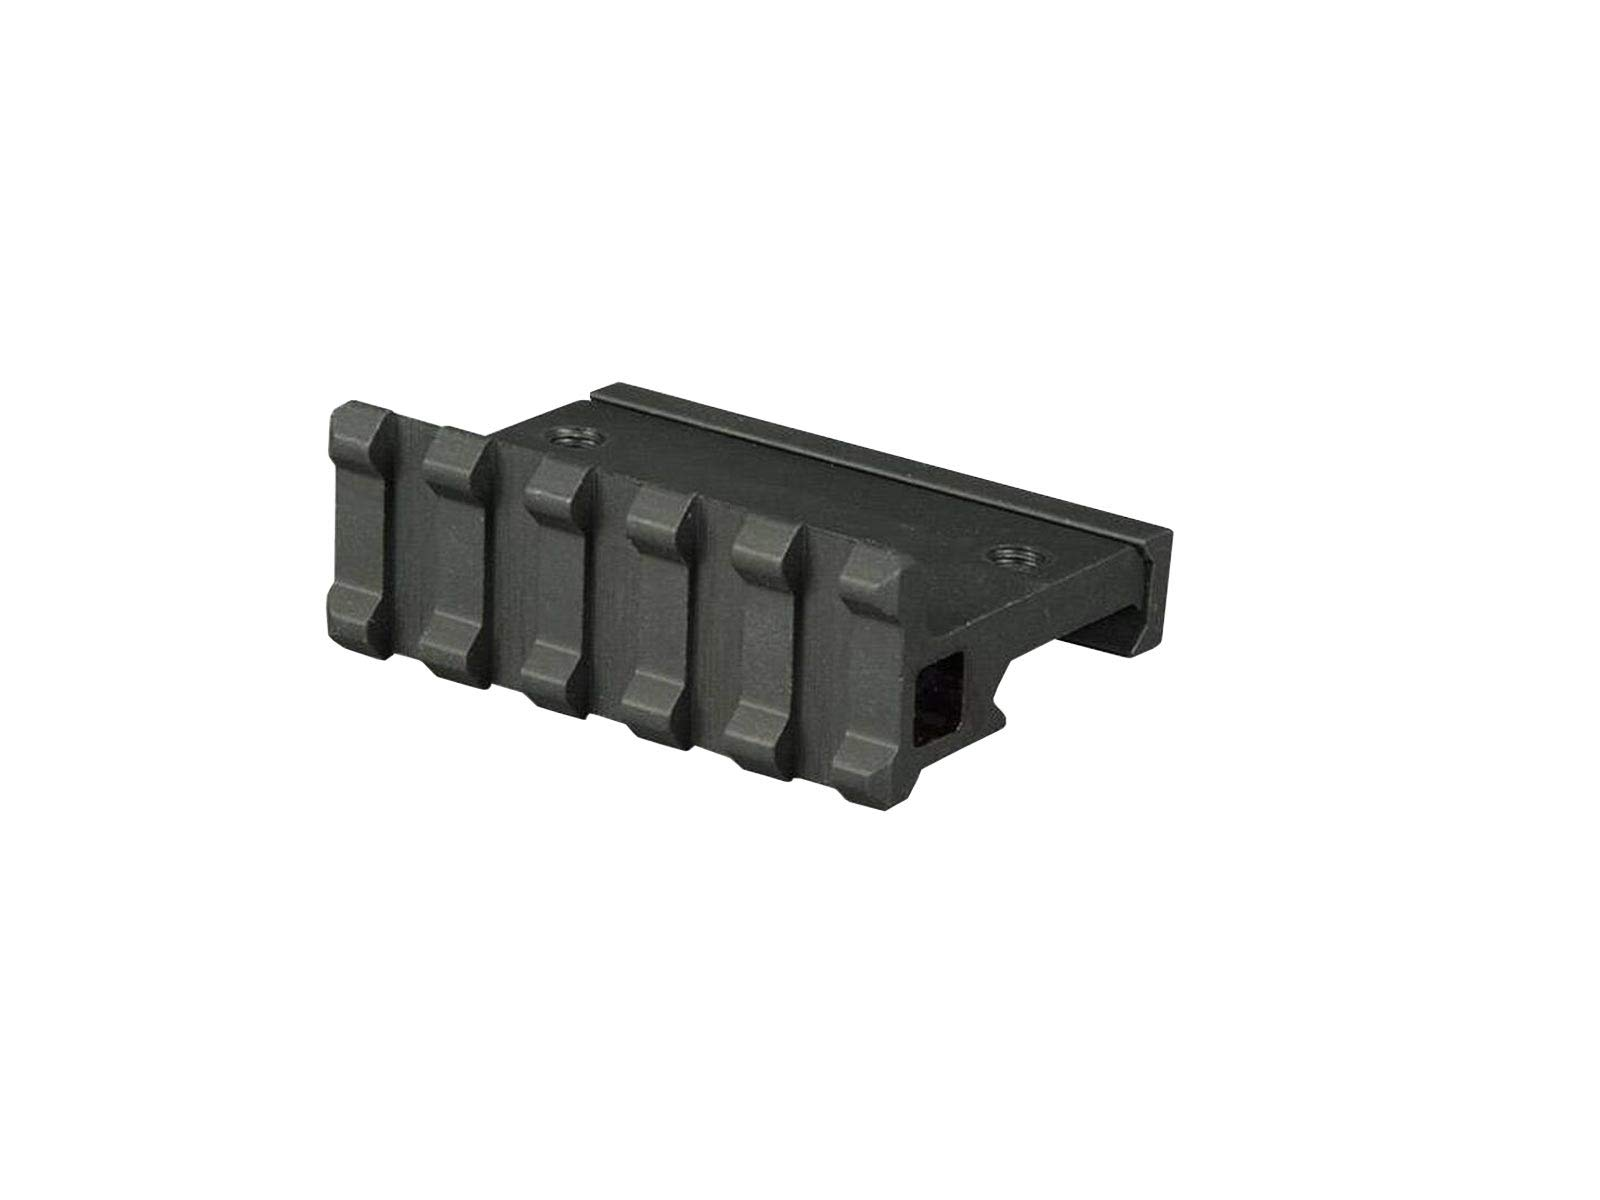 "Lion Gears Low Profile Tactical Picatinny/Weaver 90 Degree Angle Pro Mount, 2.16"" Long with 5 Slots"